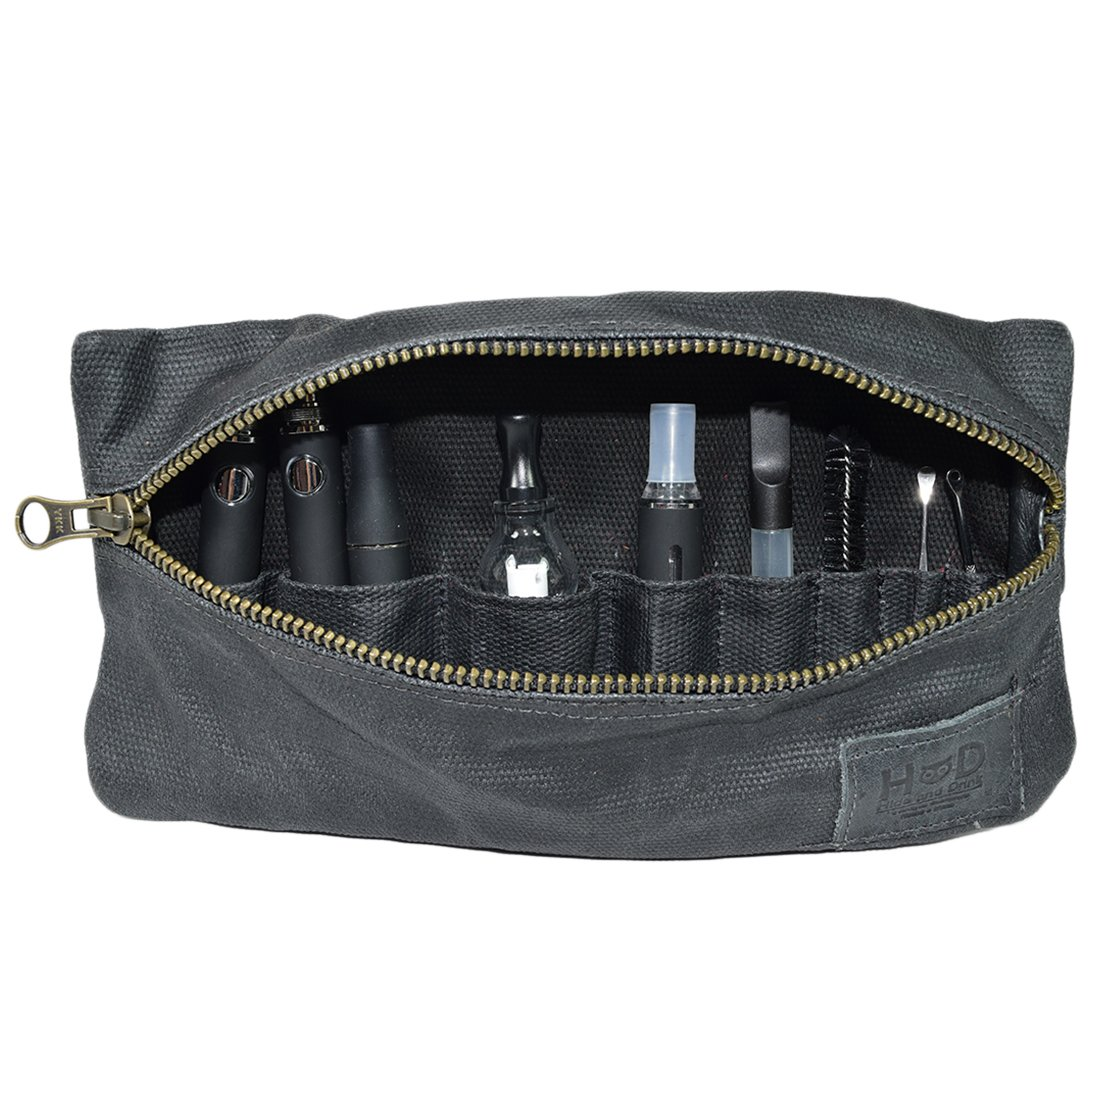 Waxed Canvas Vape Pen Accessories Kit Pouch Holder, Secure Fit, Cord Storage, G Pen Soft Travel Bag Handmade by Hide & Drink :: Charcoal Black